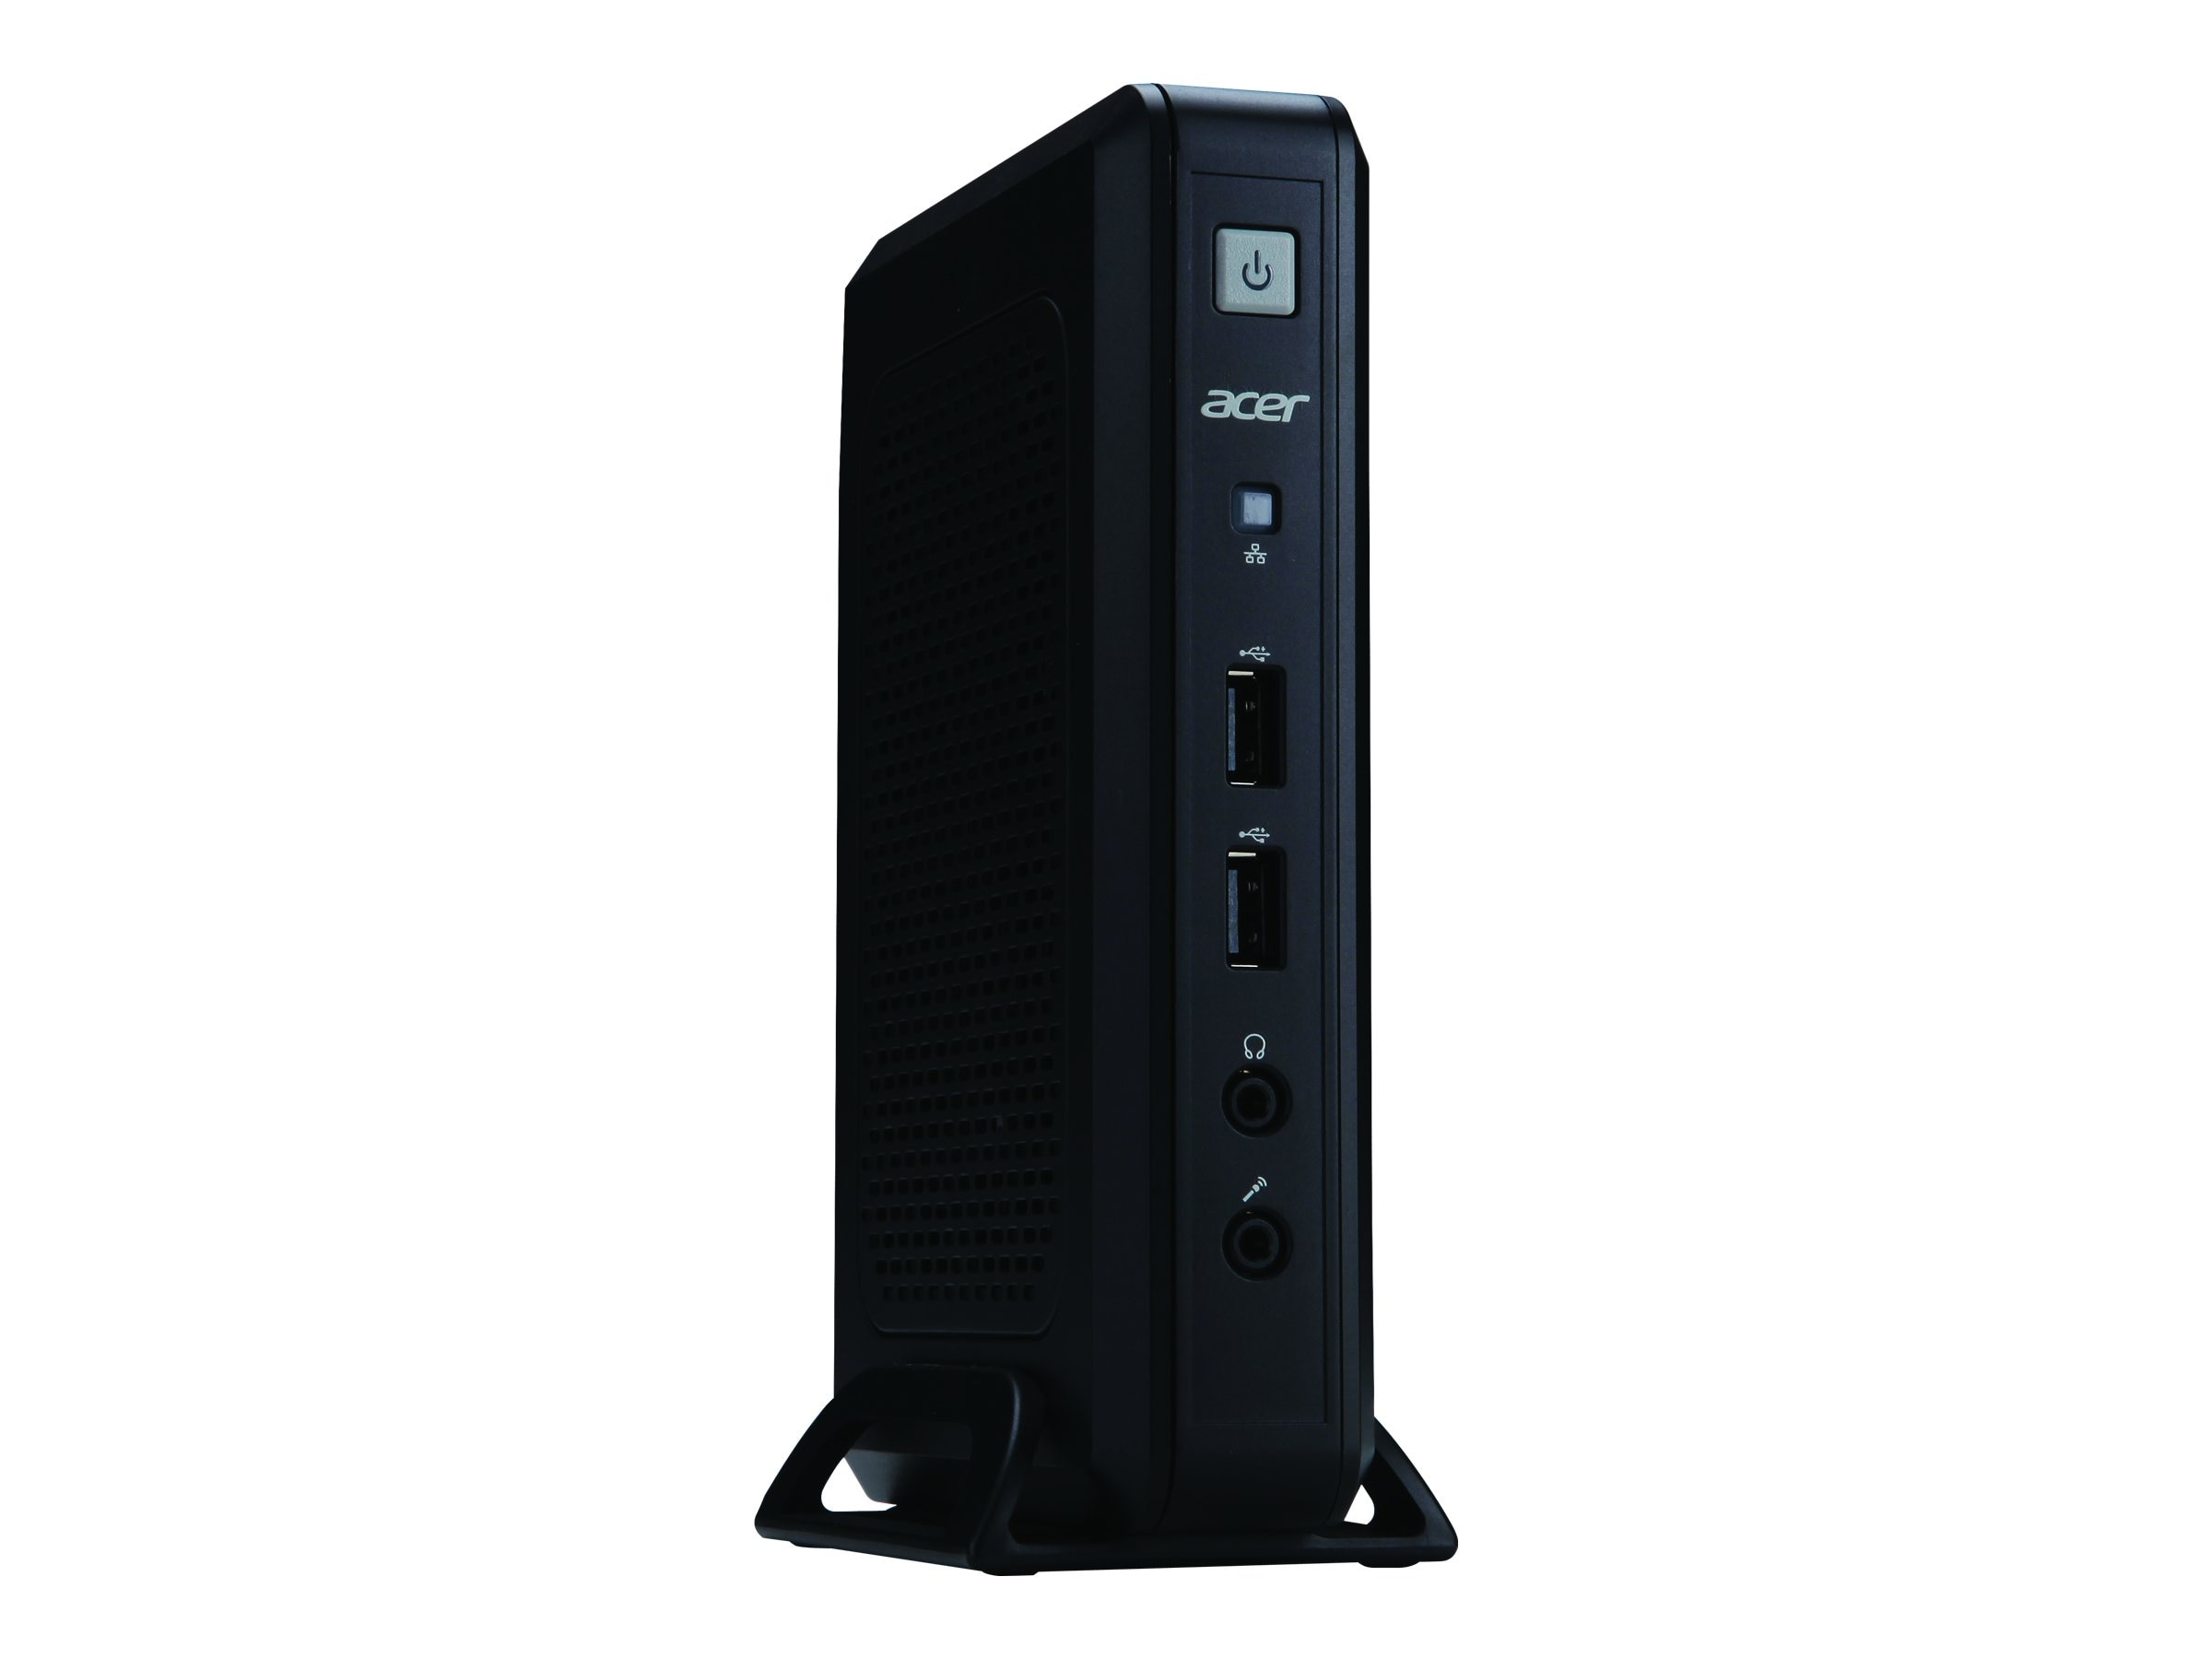 Acer Veriton VN2010G-UT03POE Thin Client DaVinci 1.0GHz 1GB 4GB MicroSD GbE PoE DeTOS 7.1, DT.VG8AA.001, 15986491, Thin Client Hardware